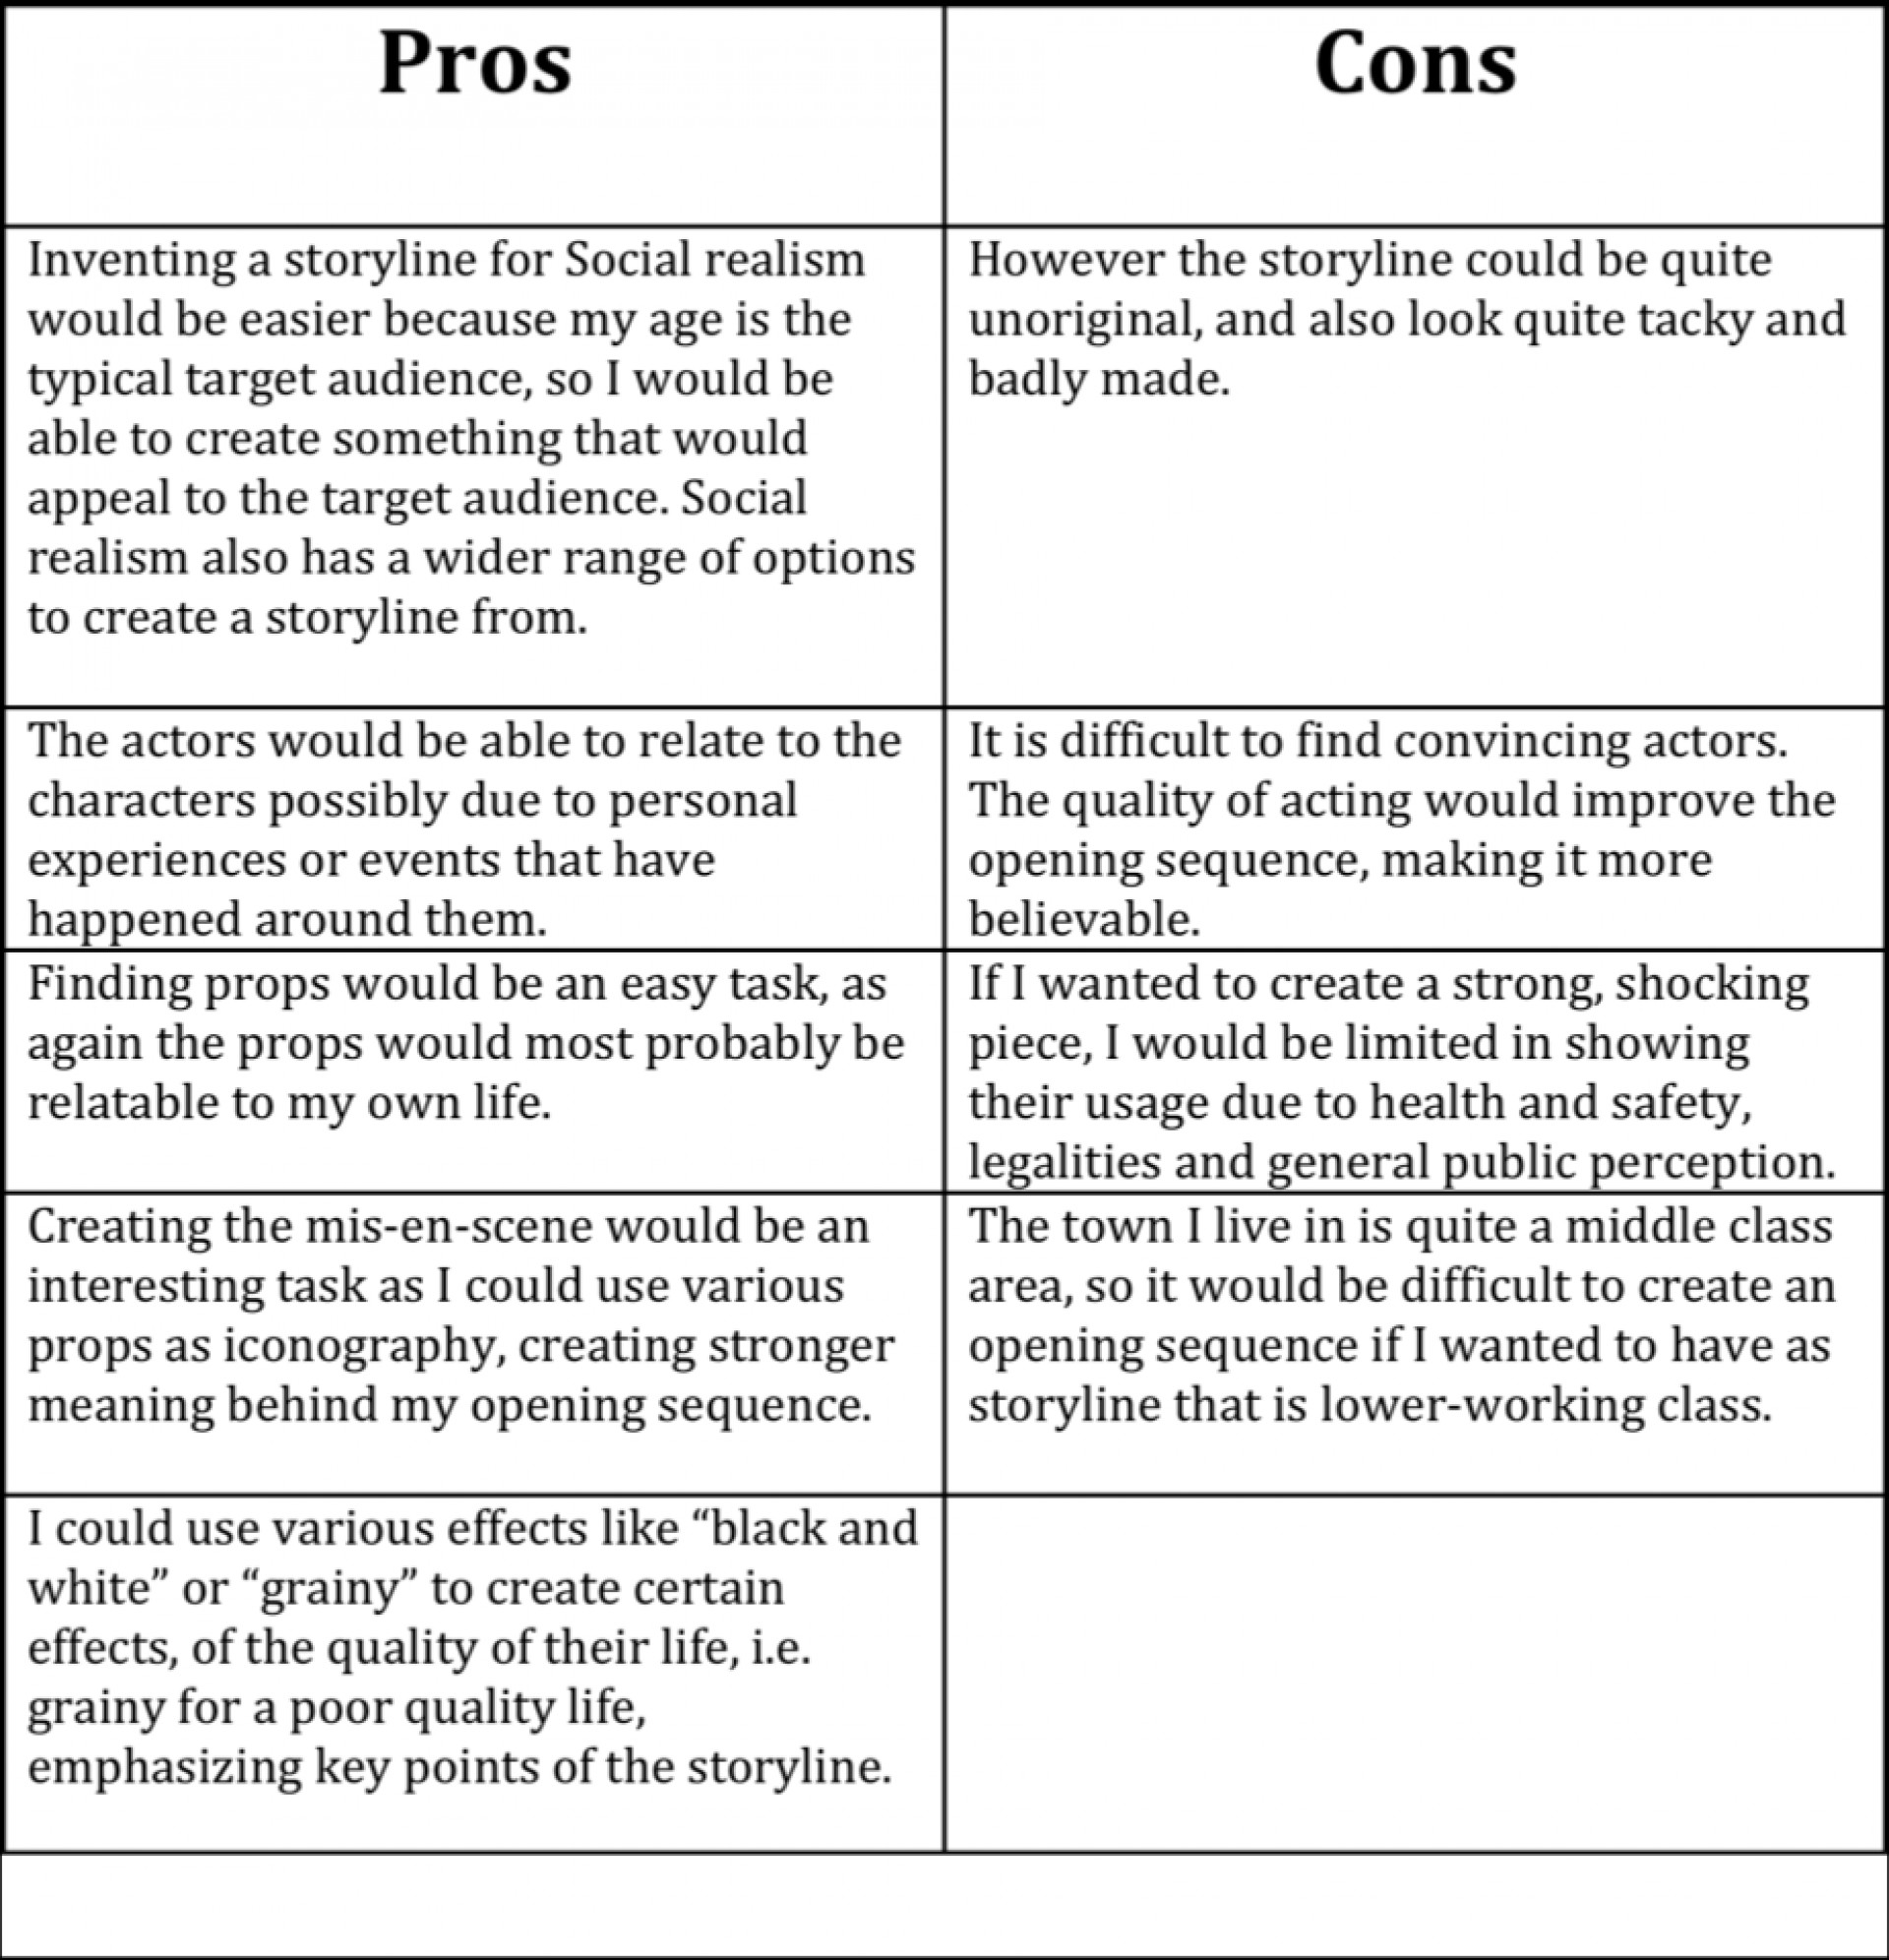 001 Untitled1 Pros And Cons Of Social Media Essay Fascinating Pdf Conclusion 200 Words 1920